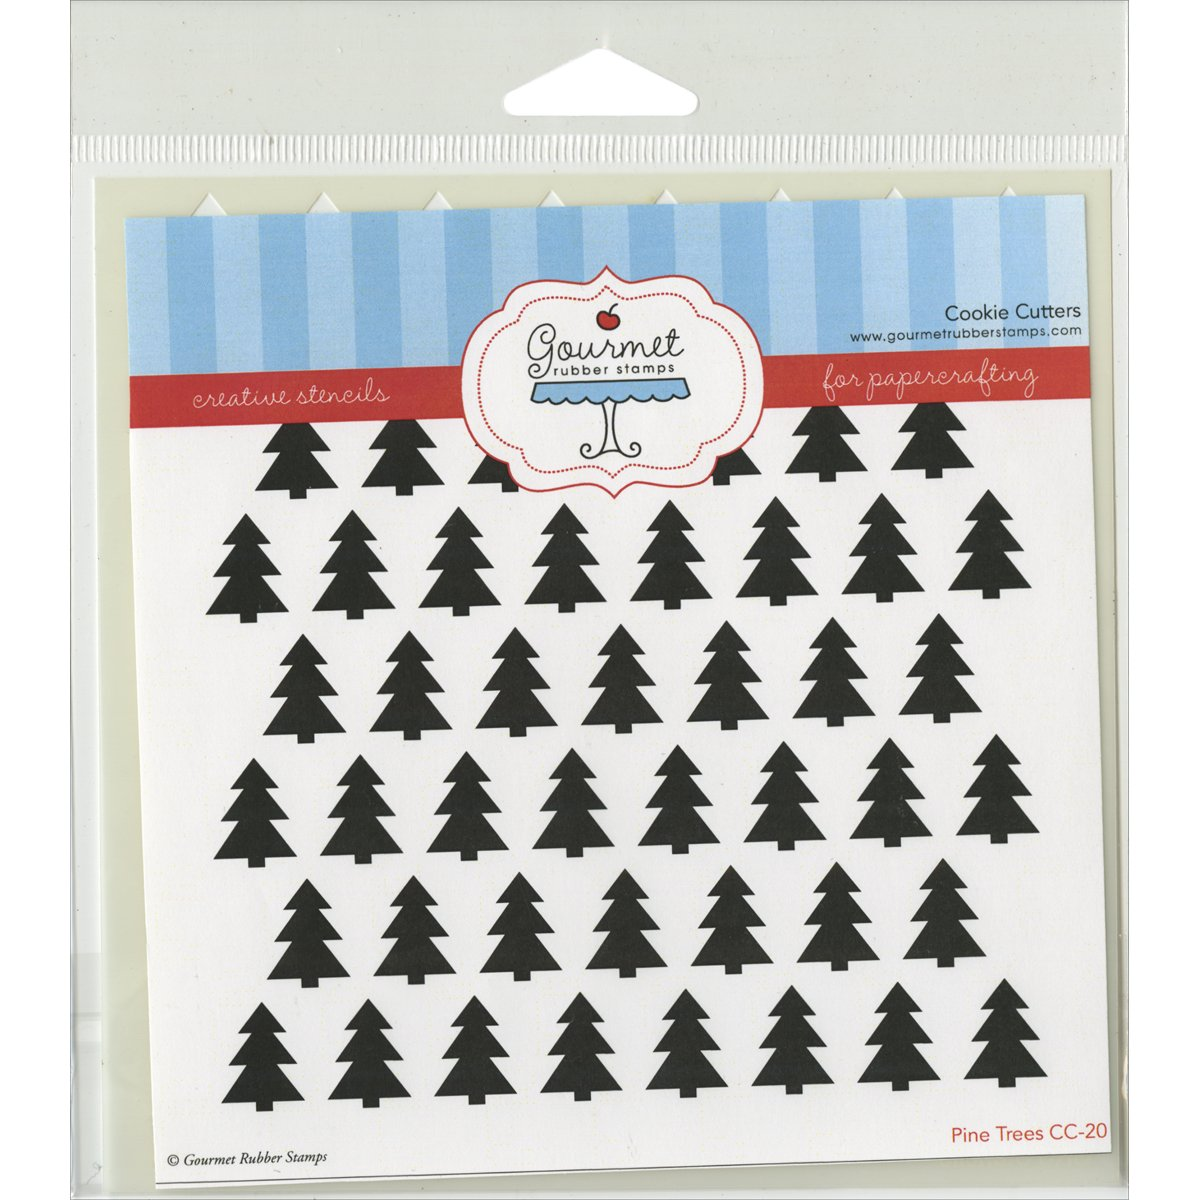 6 x 6 GRS-ST-CC20 Gourmet Rubber Stamps Pine Trees Stencil